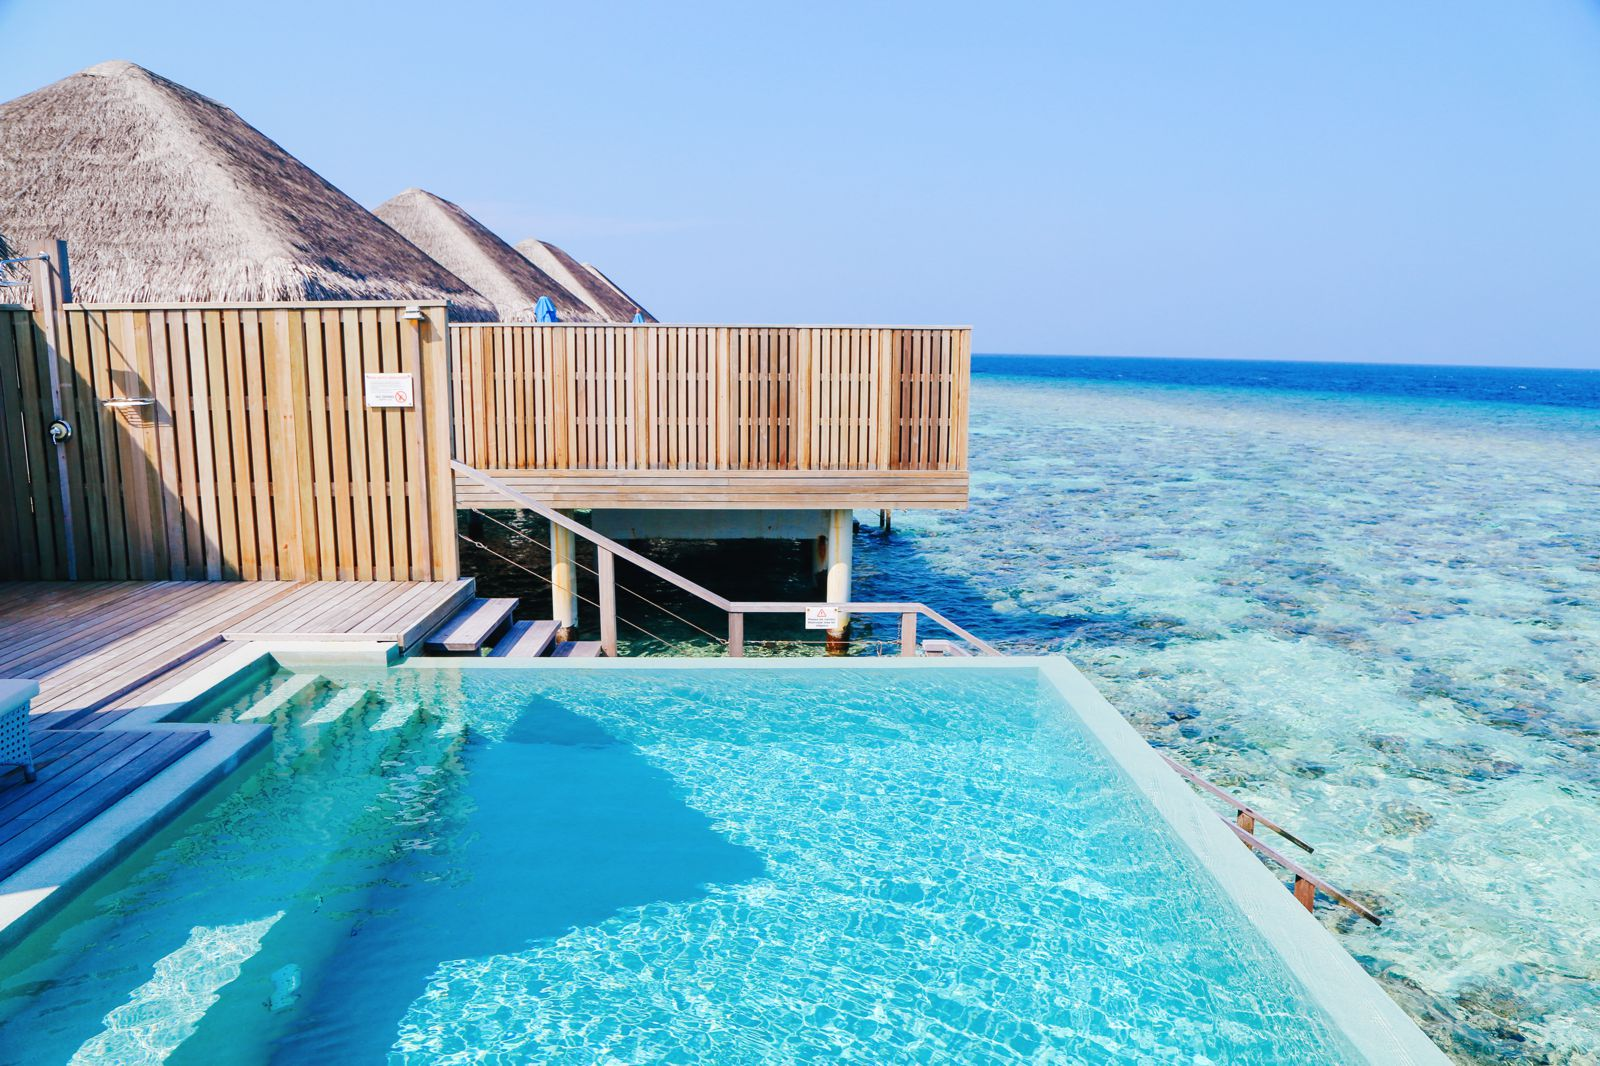 Arrival At The Dusit Thani In The Maldives! (26)